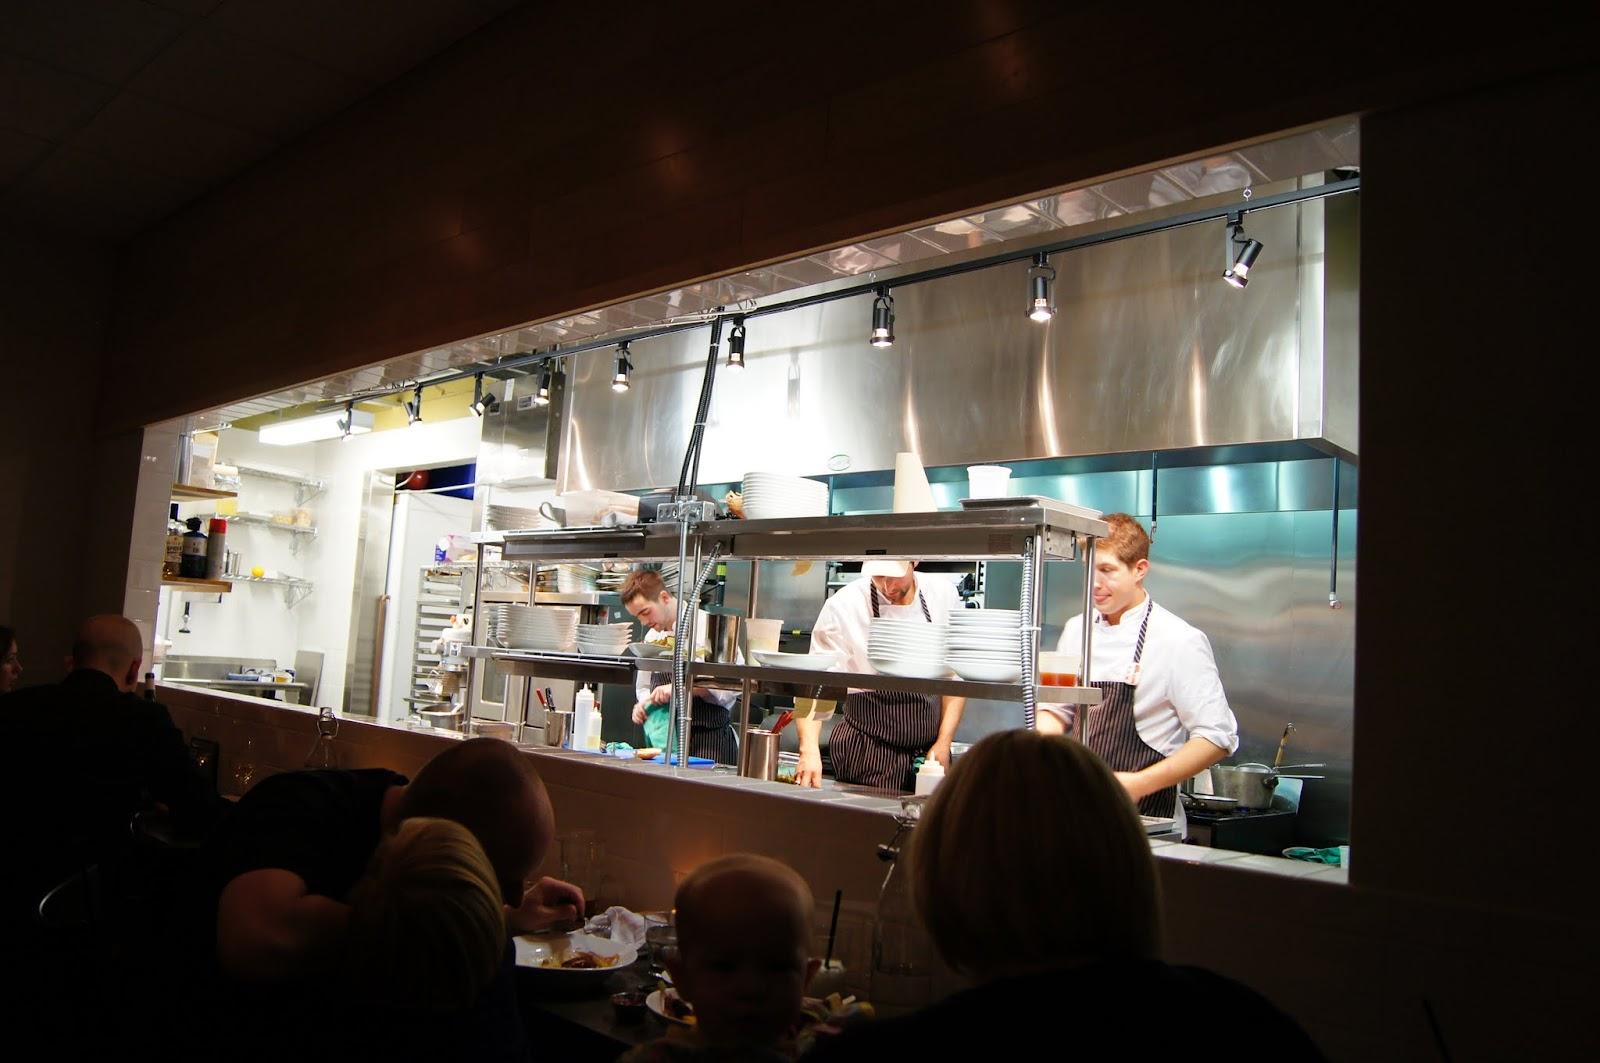 Mashed thoughts an epic dinner at richmond station toronto on the chefs table is right along the wall under the kitchen window it was full by the time we reserved so we were seated at a smaller table but still right workwithnaturefo